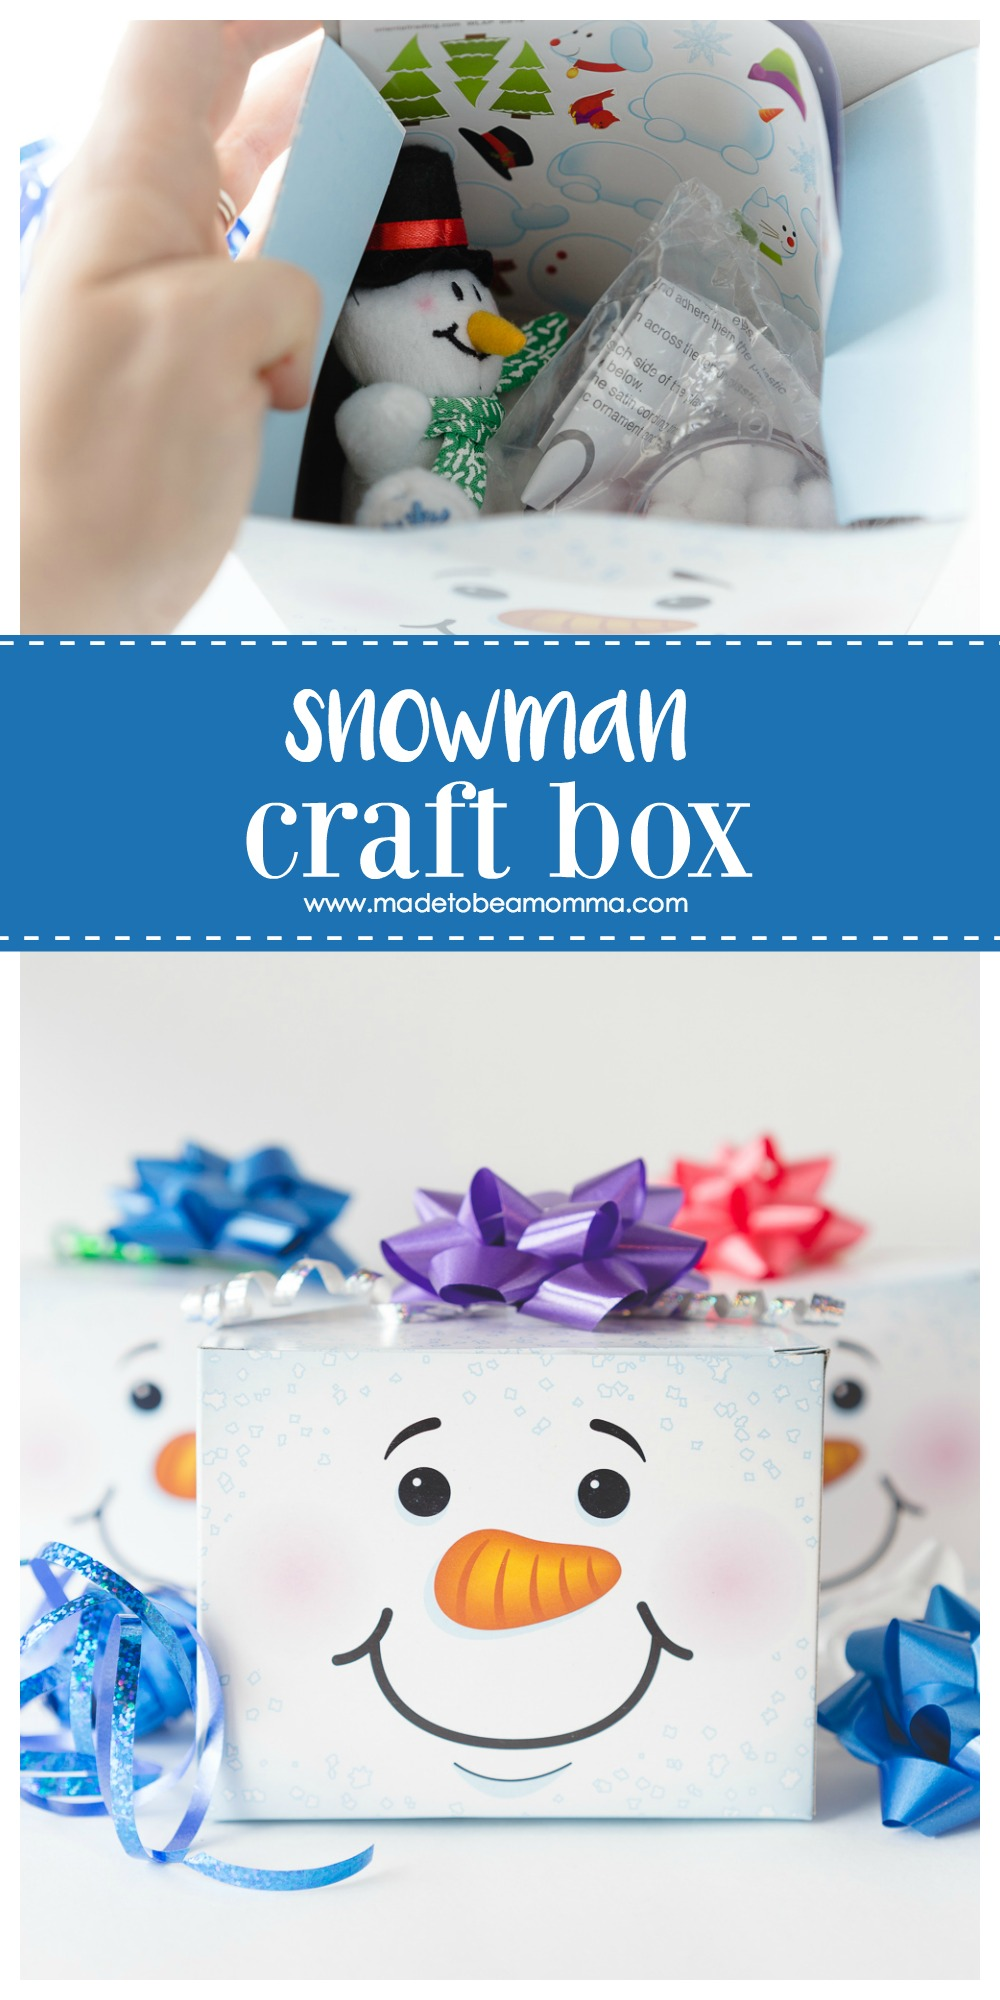 Snowman Craft Box: a little snowman box filled with goodies to help pass the winter day away.  www.madetobeamomma.com